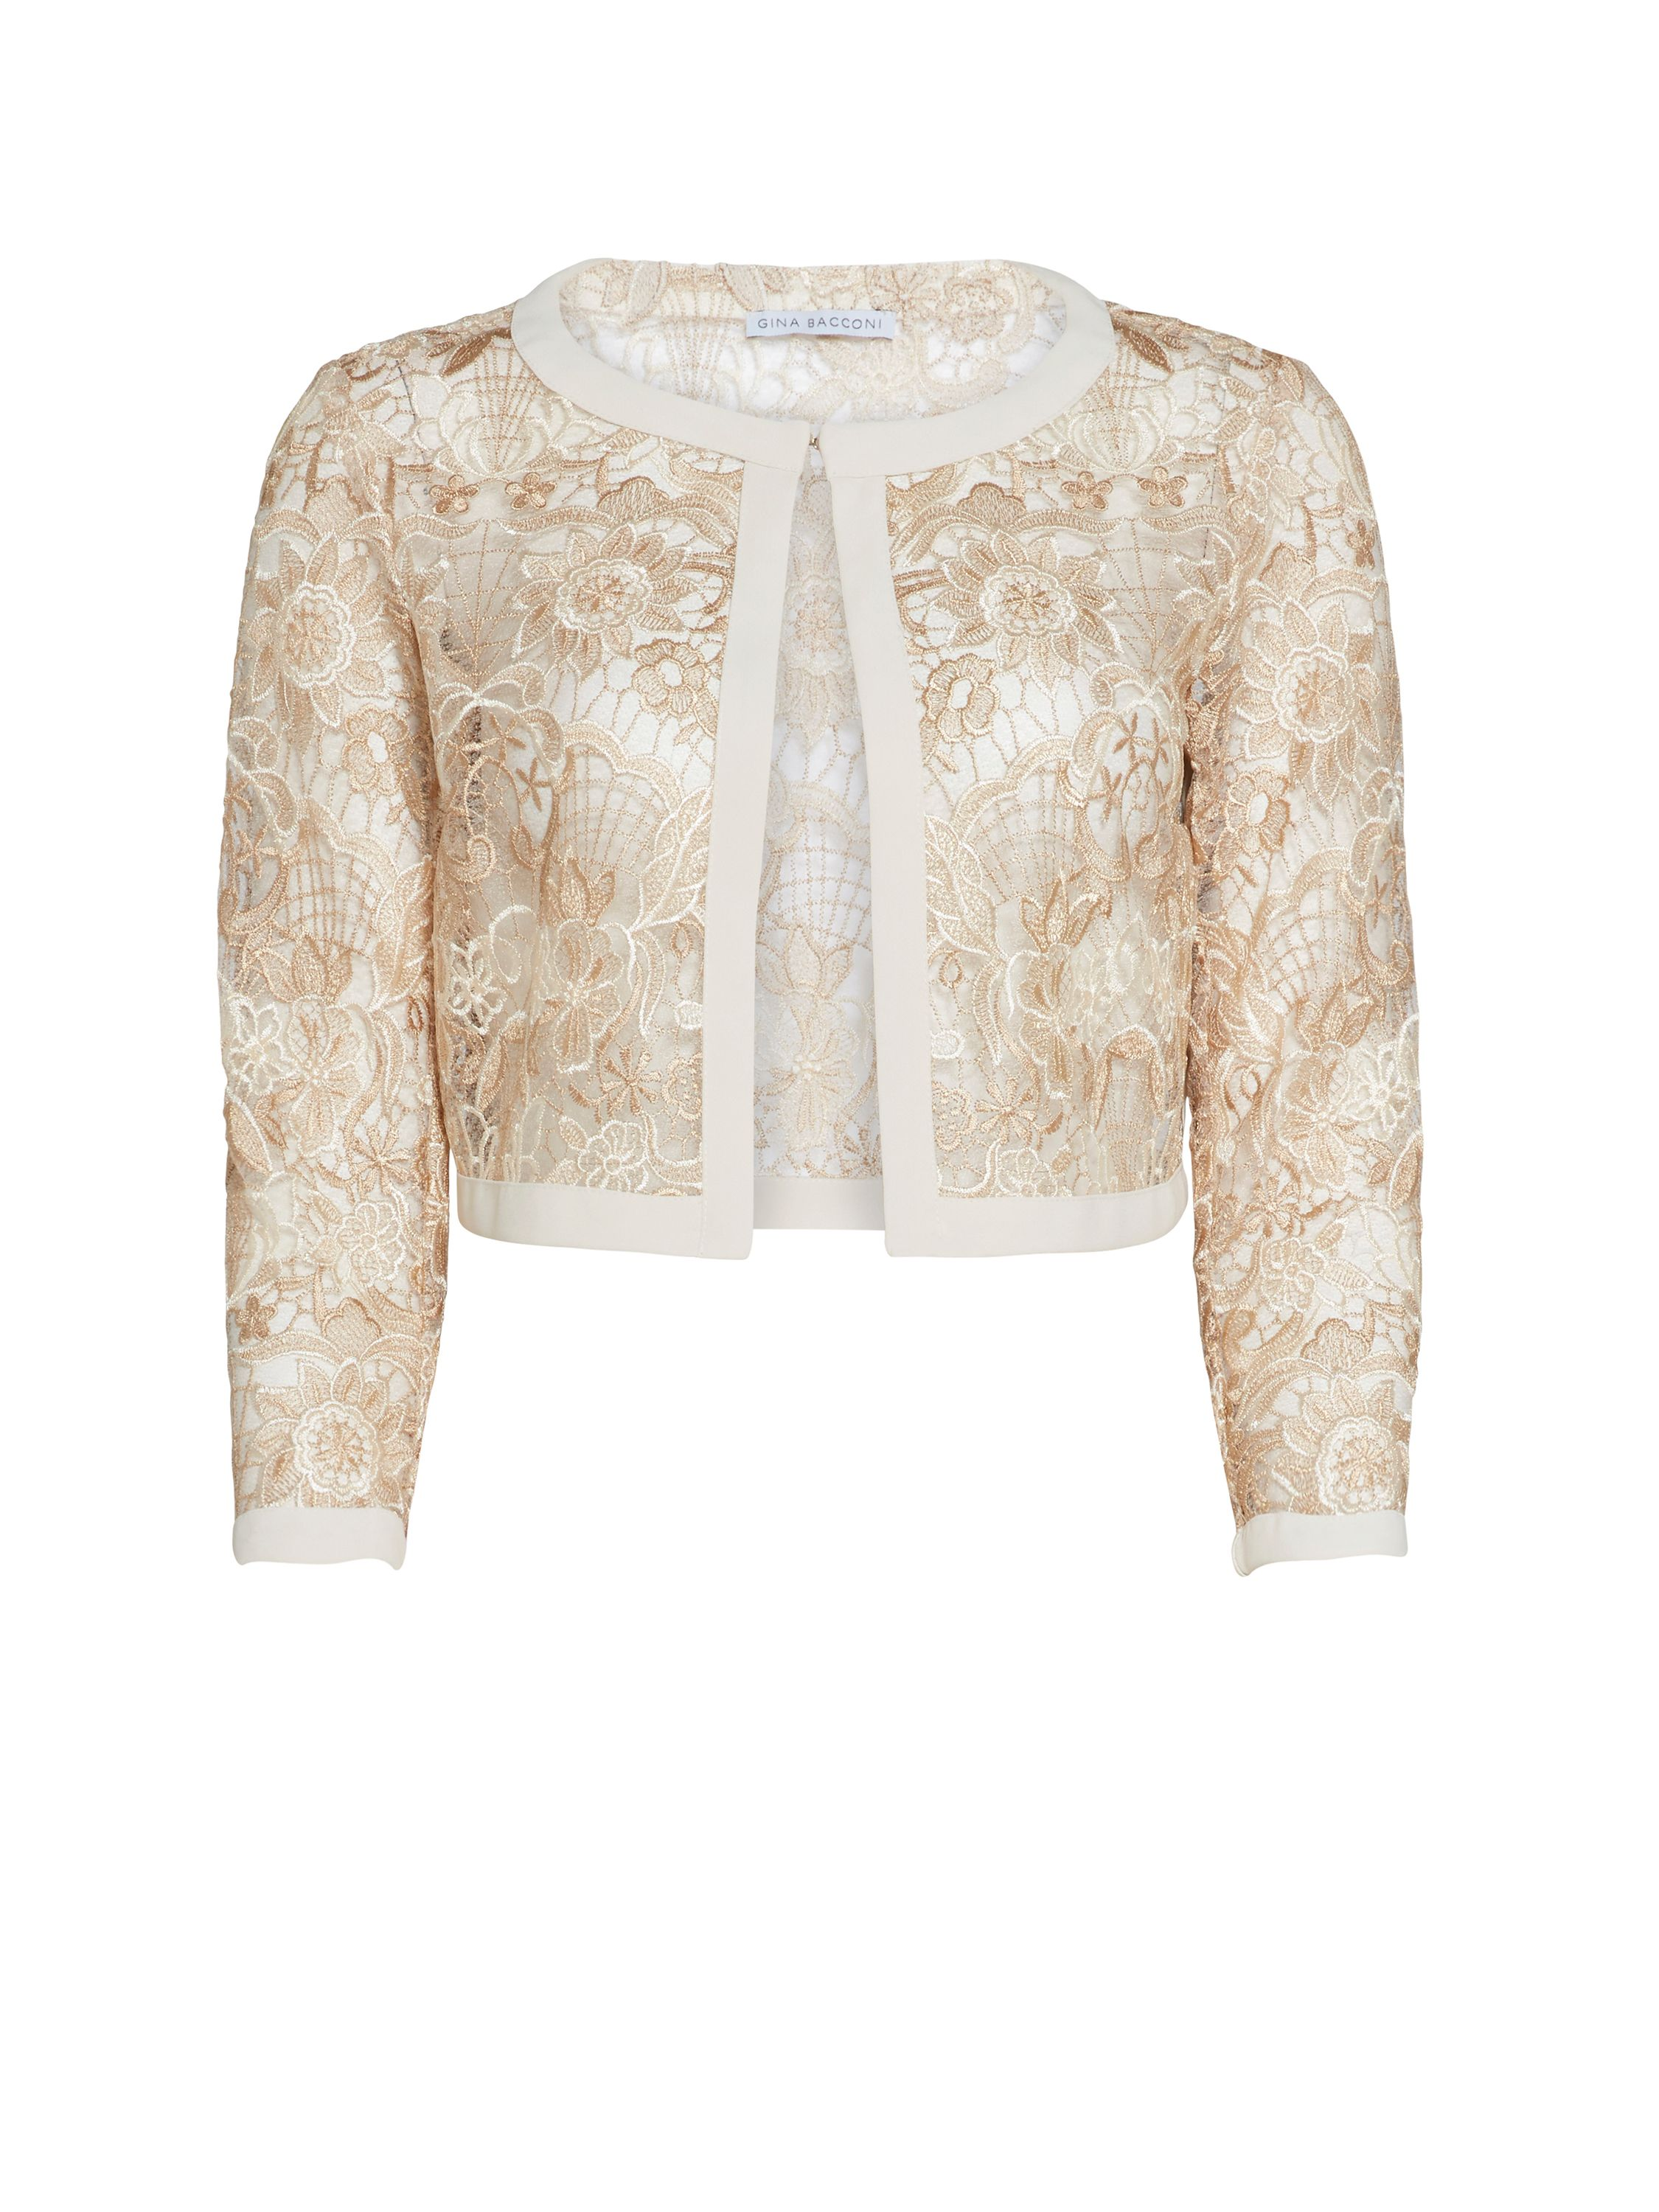 Gina Bacconi Crepe And Floral Embroidered Mesh Jacket, Cream